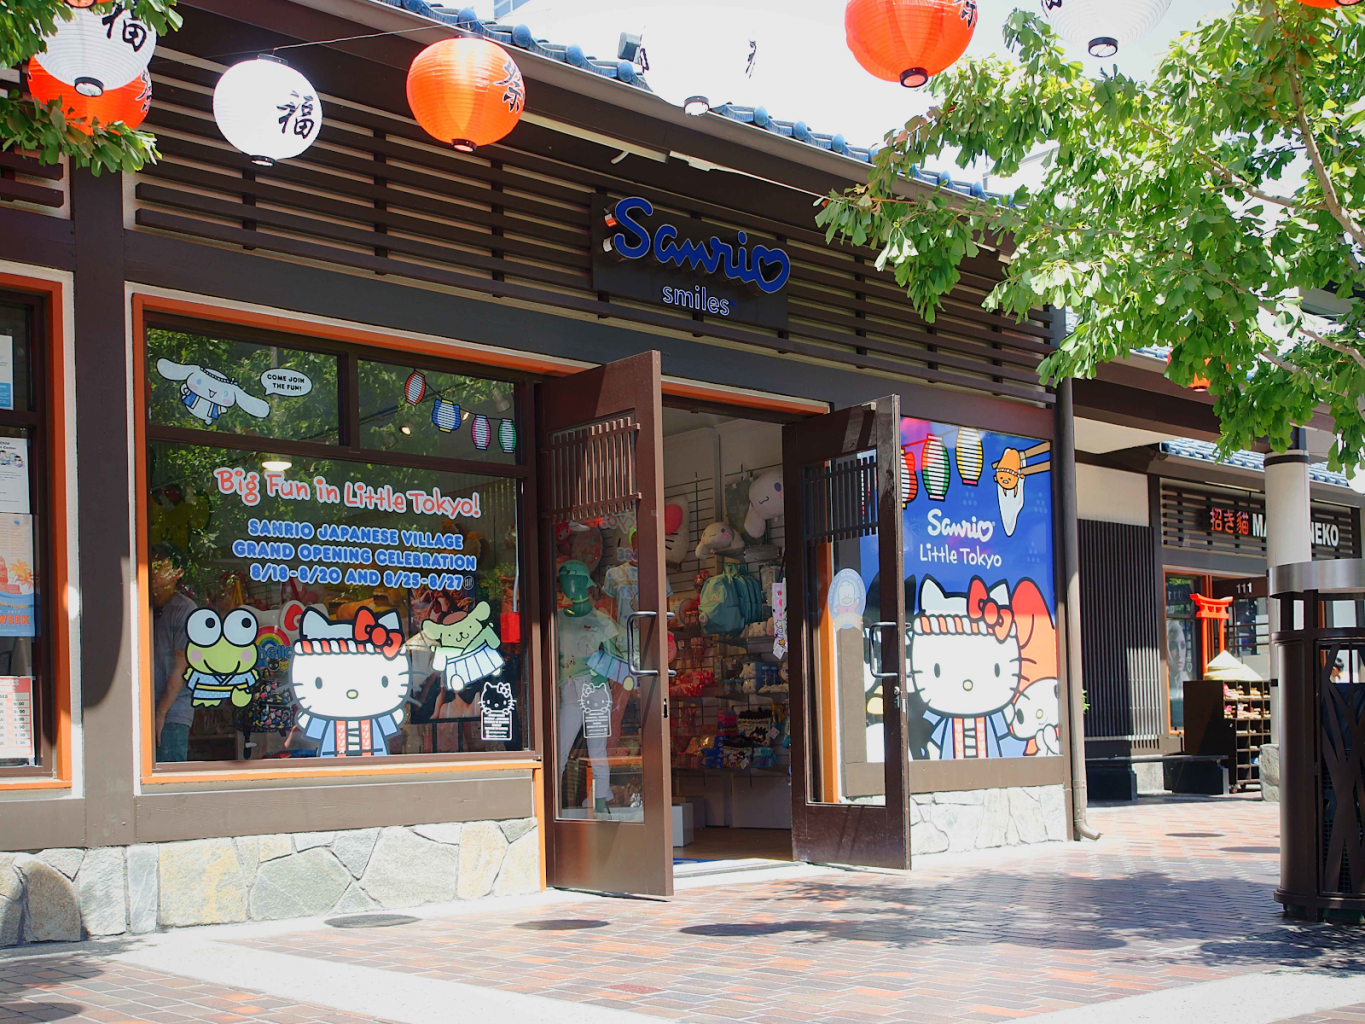 sanrio little tokyo storefront los angeles